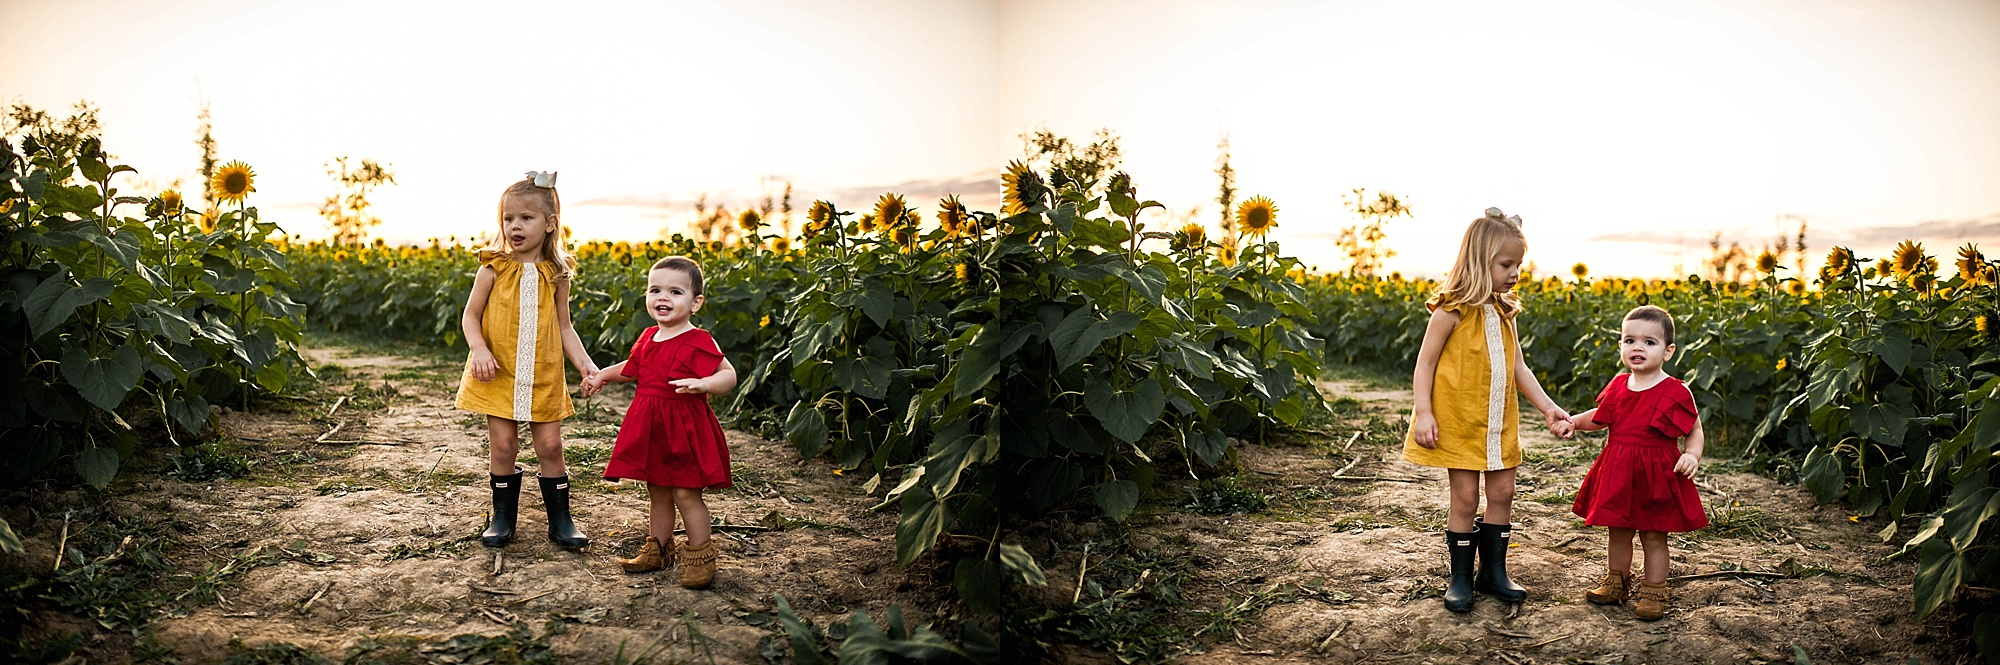 lauren-grayson-photography-cleveland-ohio-photographer-sunflower-fields-sunset-golden-hour-photo-shoot-mommy-and-me-family-child-photographer_0569.jpg